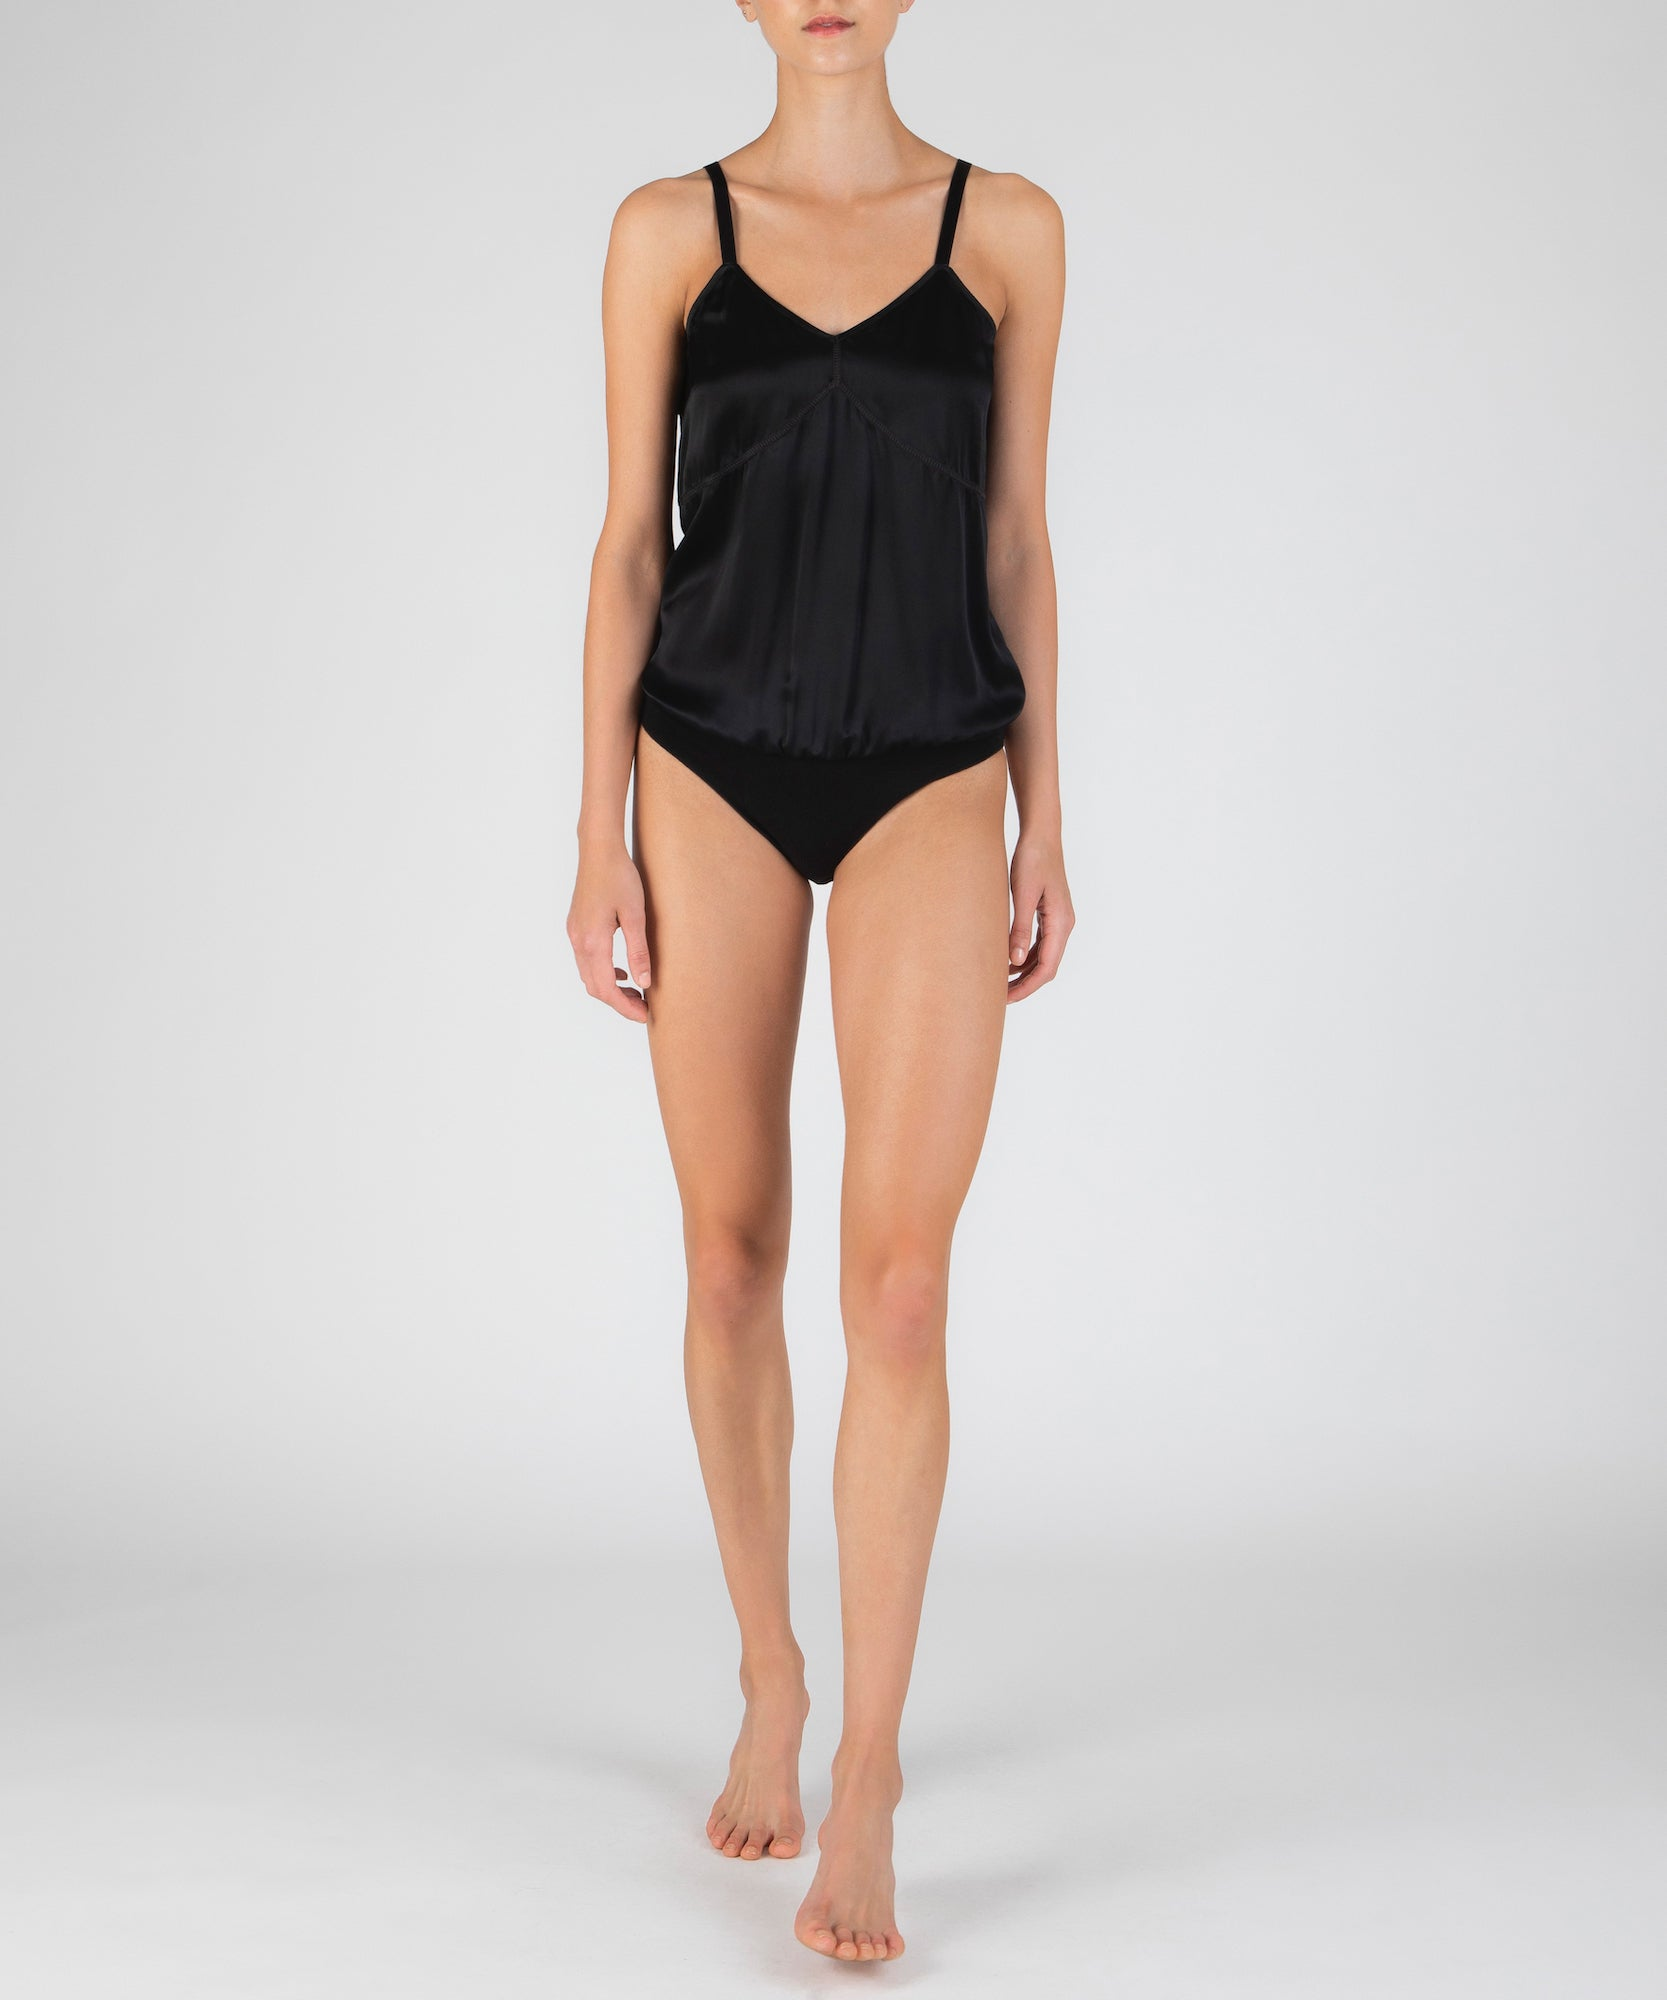 Black Silk V-Neck Cami Bodysuit - Women's Luxe Bodysuit ATM Anthony Thomas Melillo